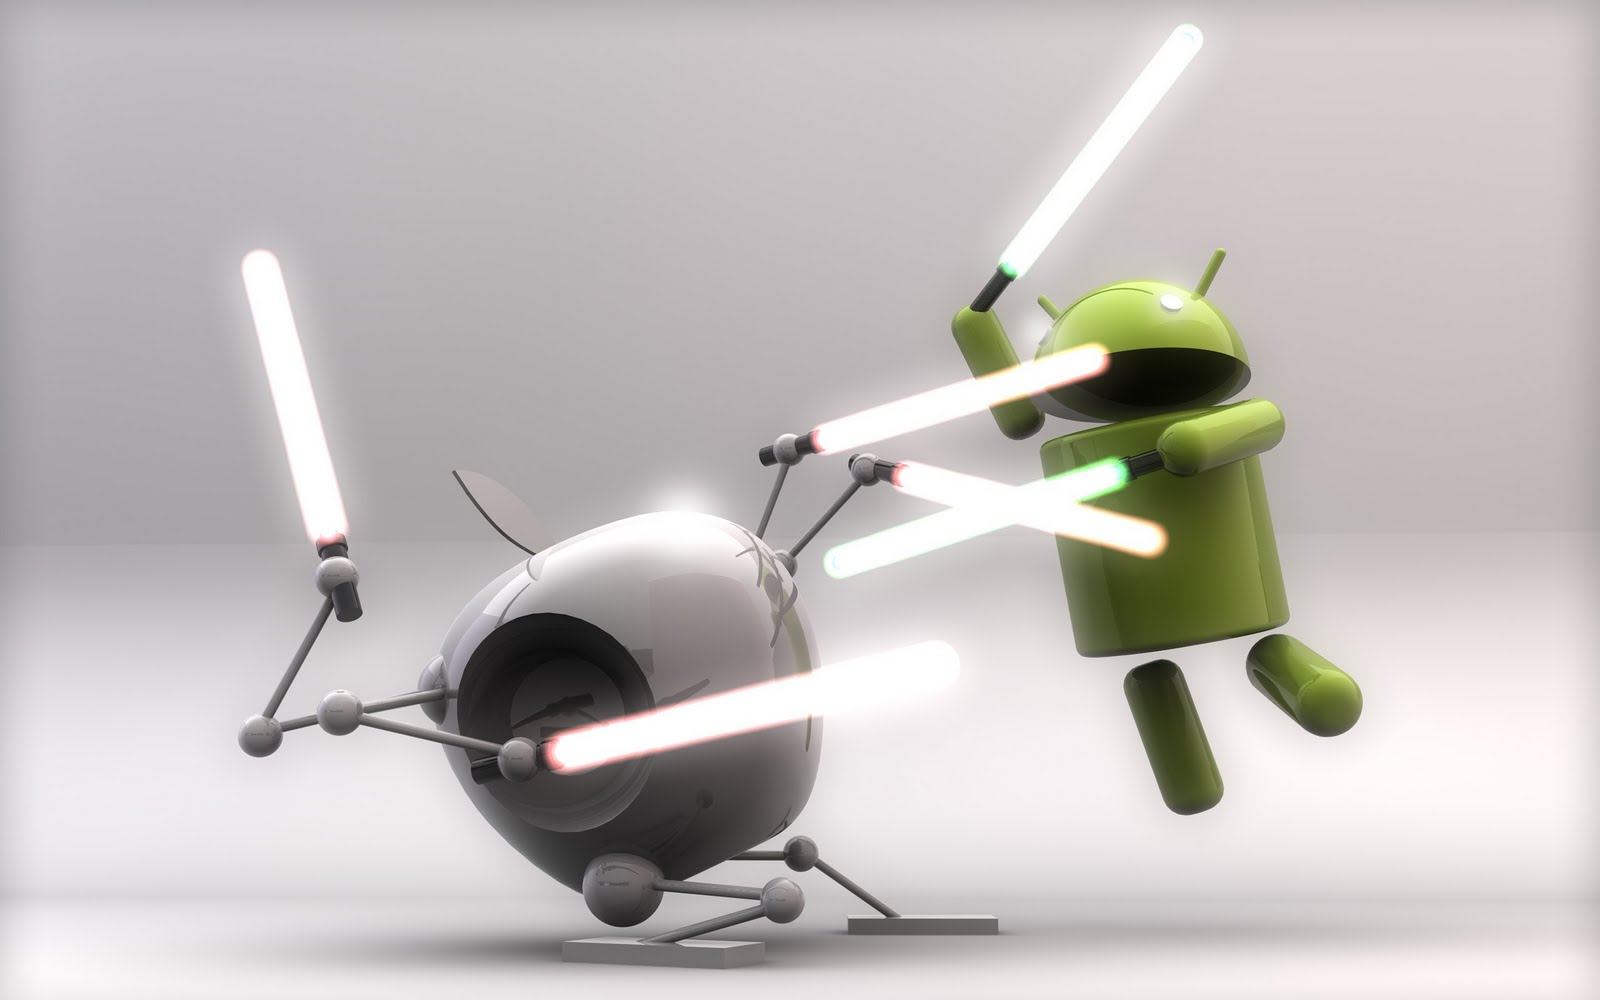 What are the Reasons for App Developer's Preference for iOS Over Android?